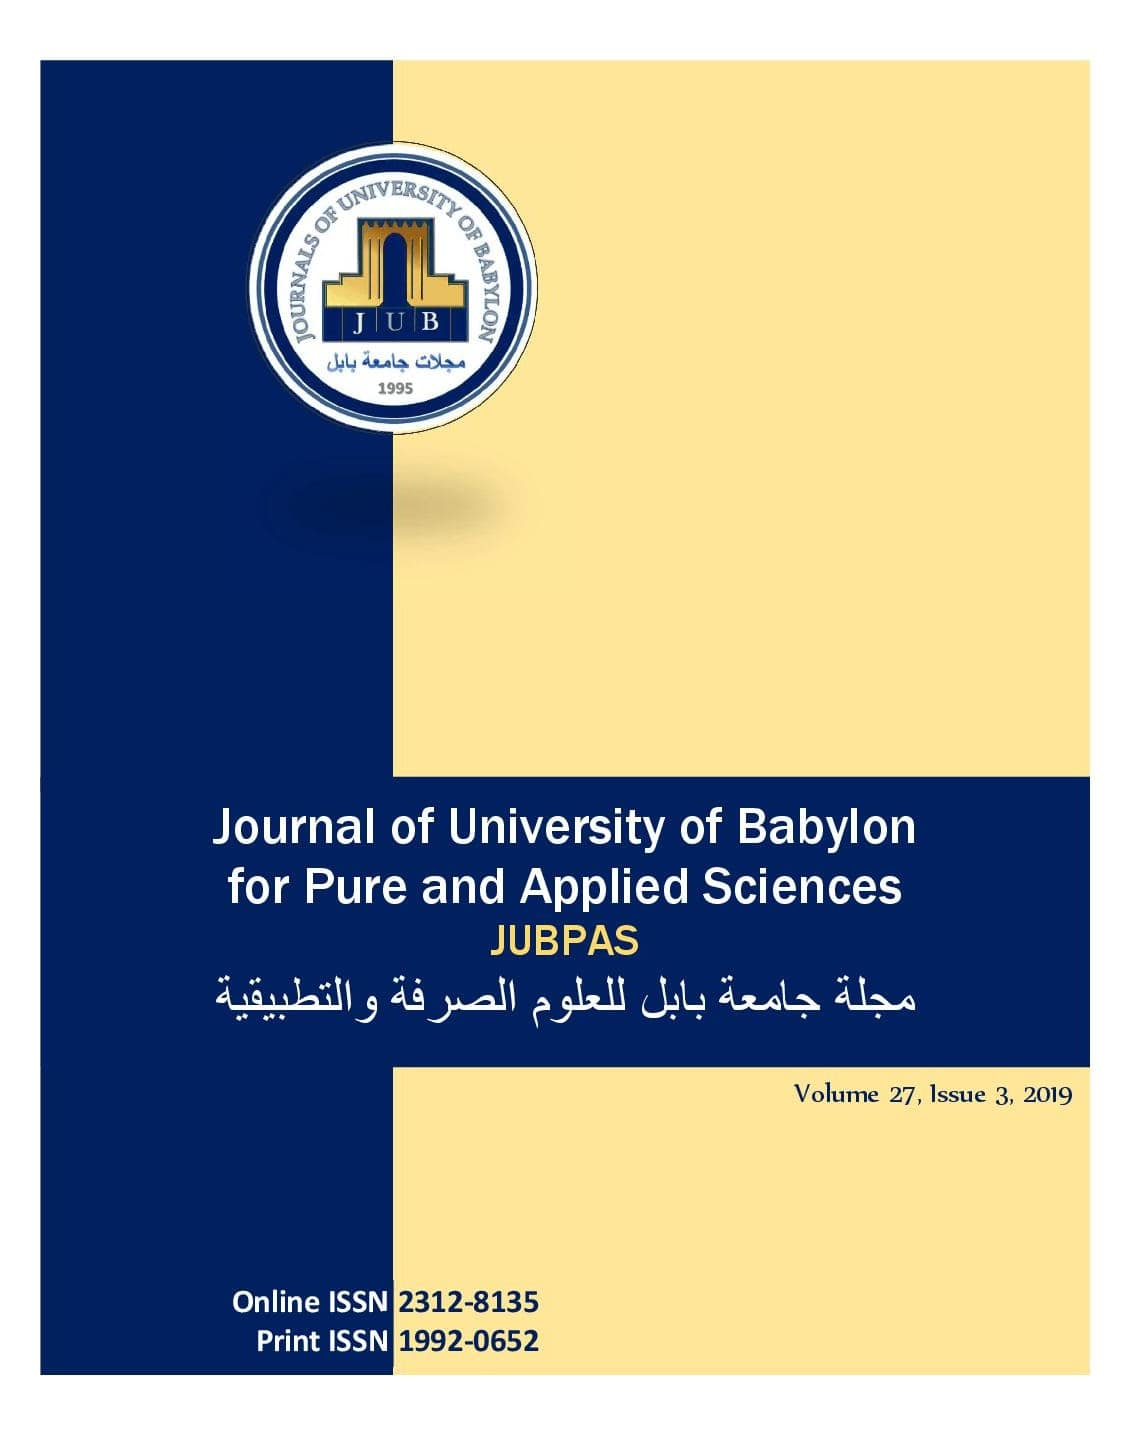 JUBPAS, vol. 27, no. 3, 2019